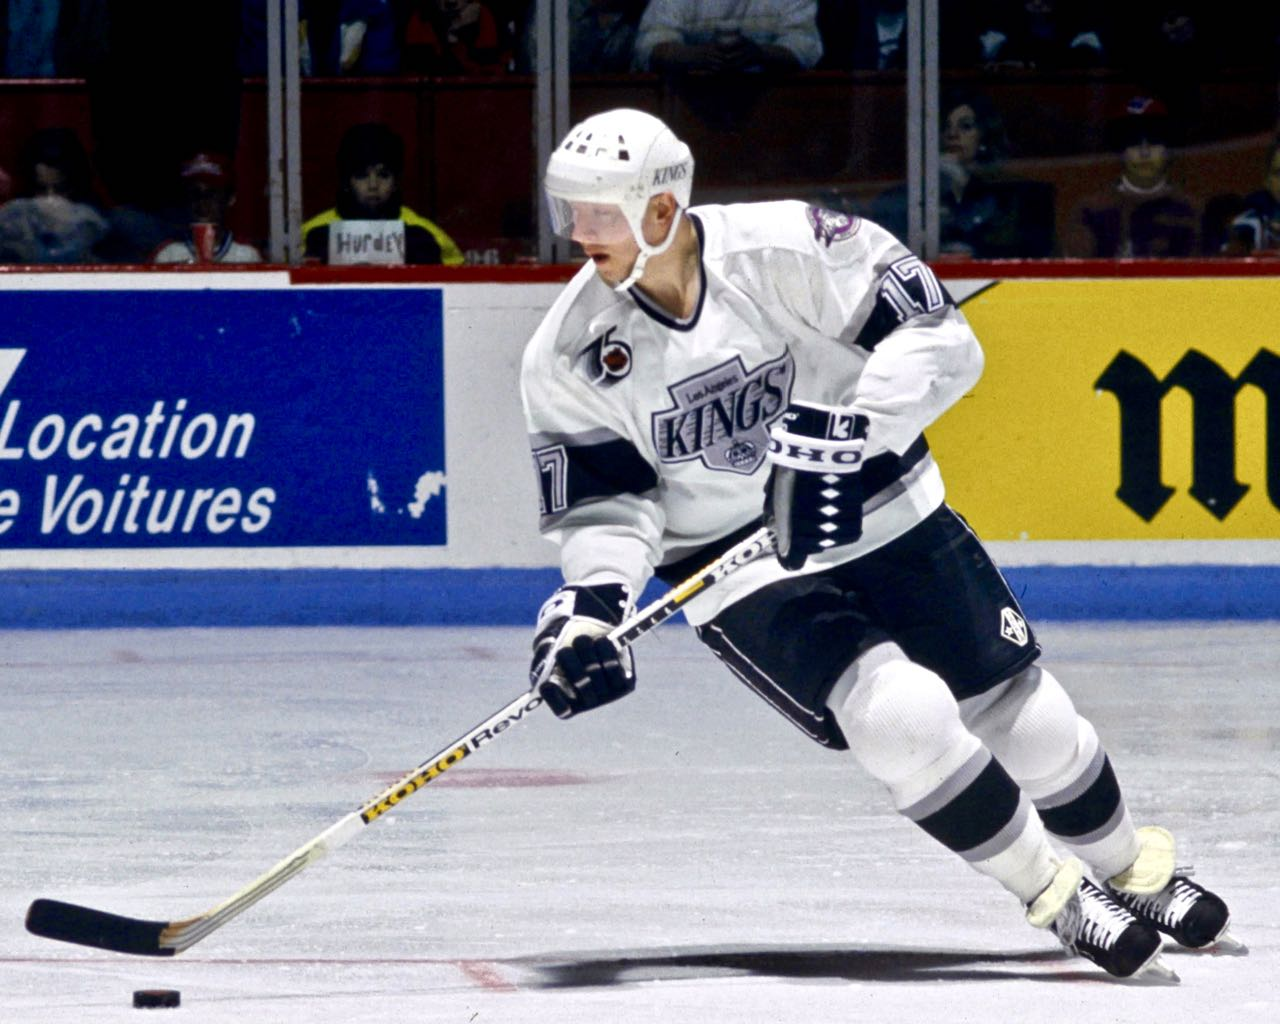 My Chat With La Kings Legend Jari Kurri At The Hall Of Fame